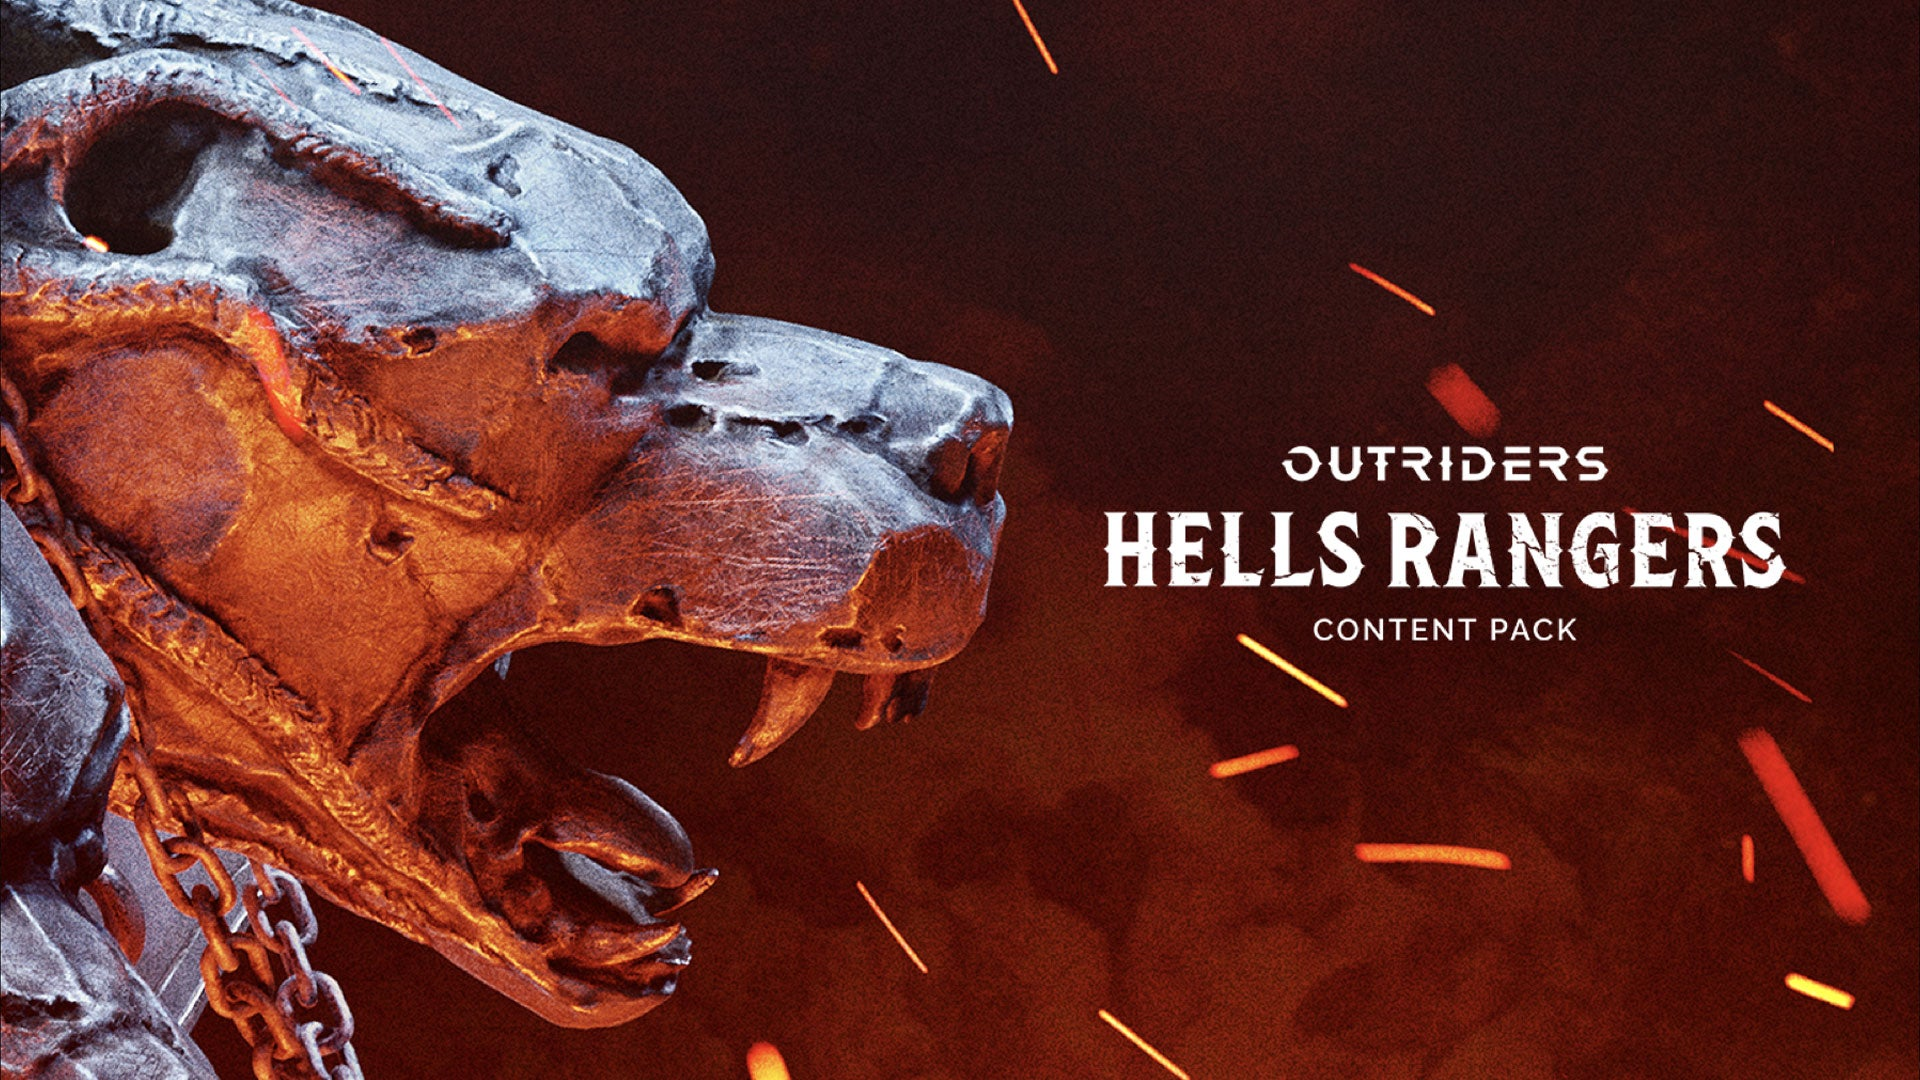 image of hells rangers content pack